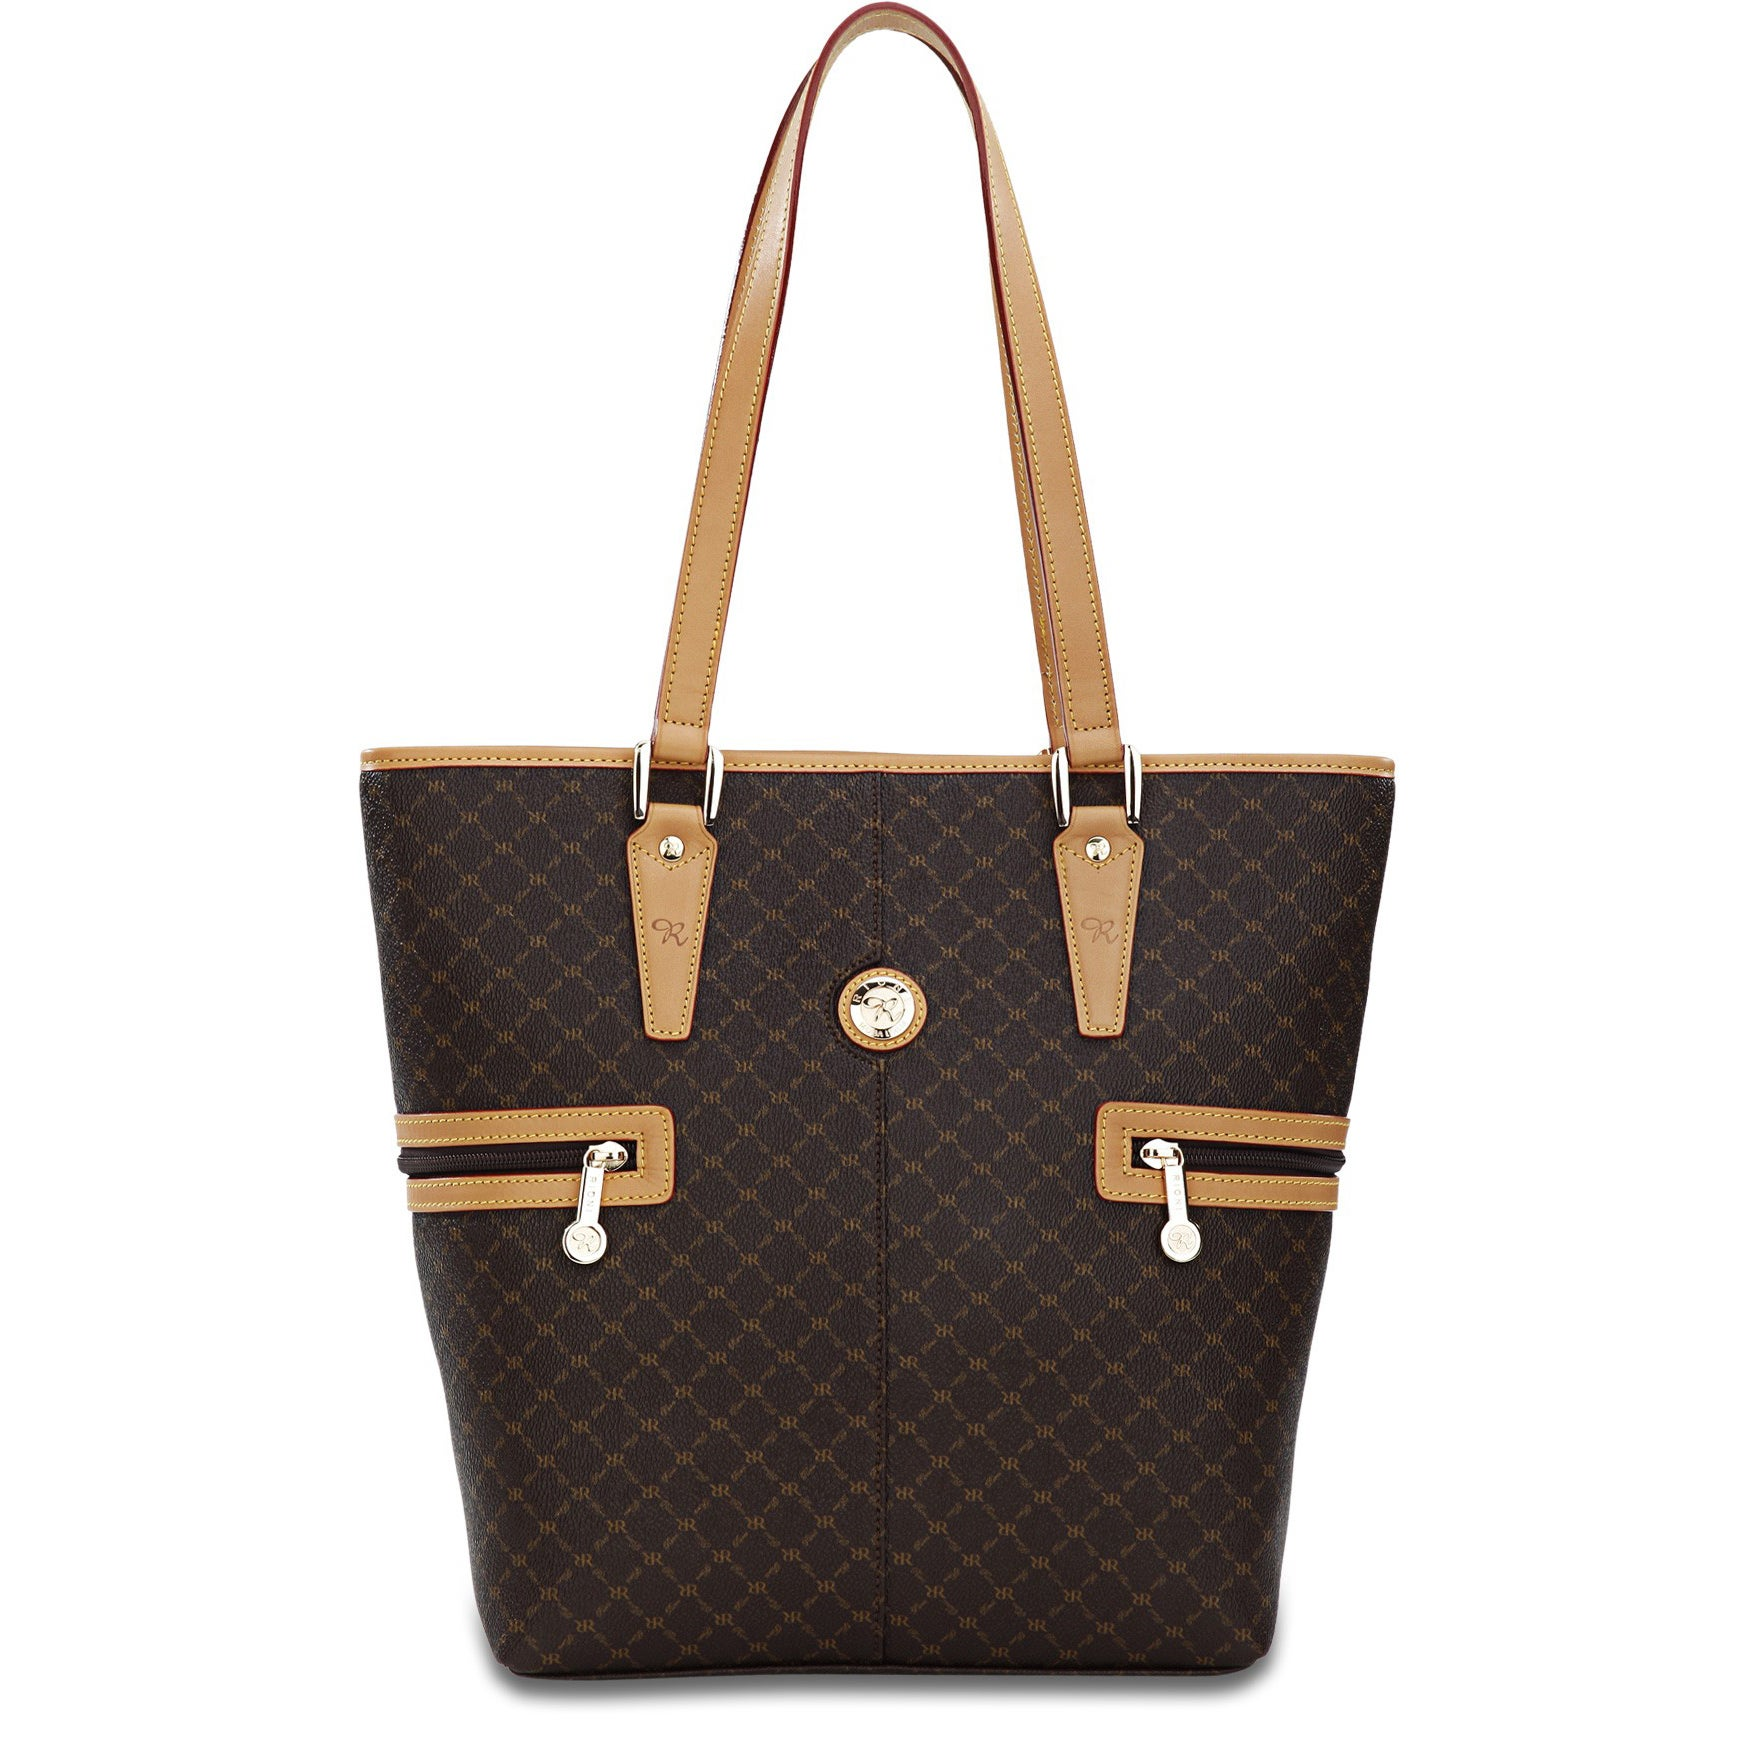 f8d396659d54 Shop Rioni Signature Tall Shopper Tote Bag - Free Shipping Today ...